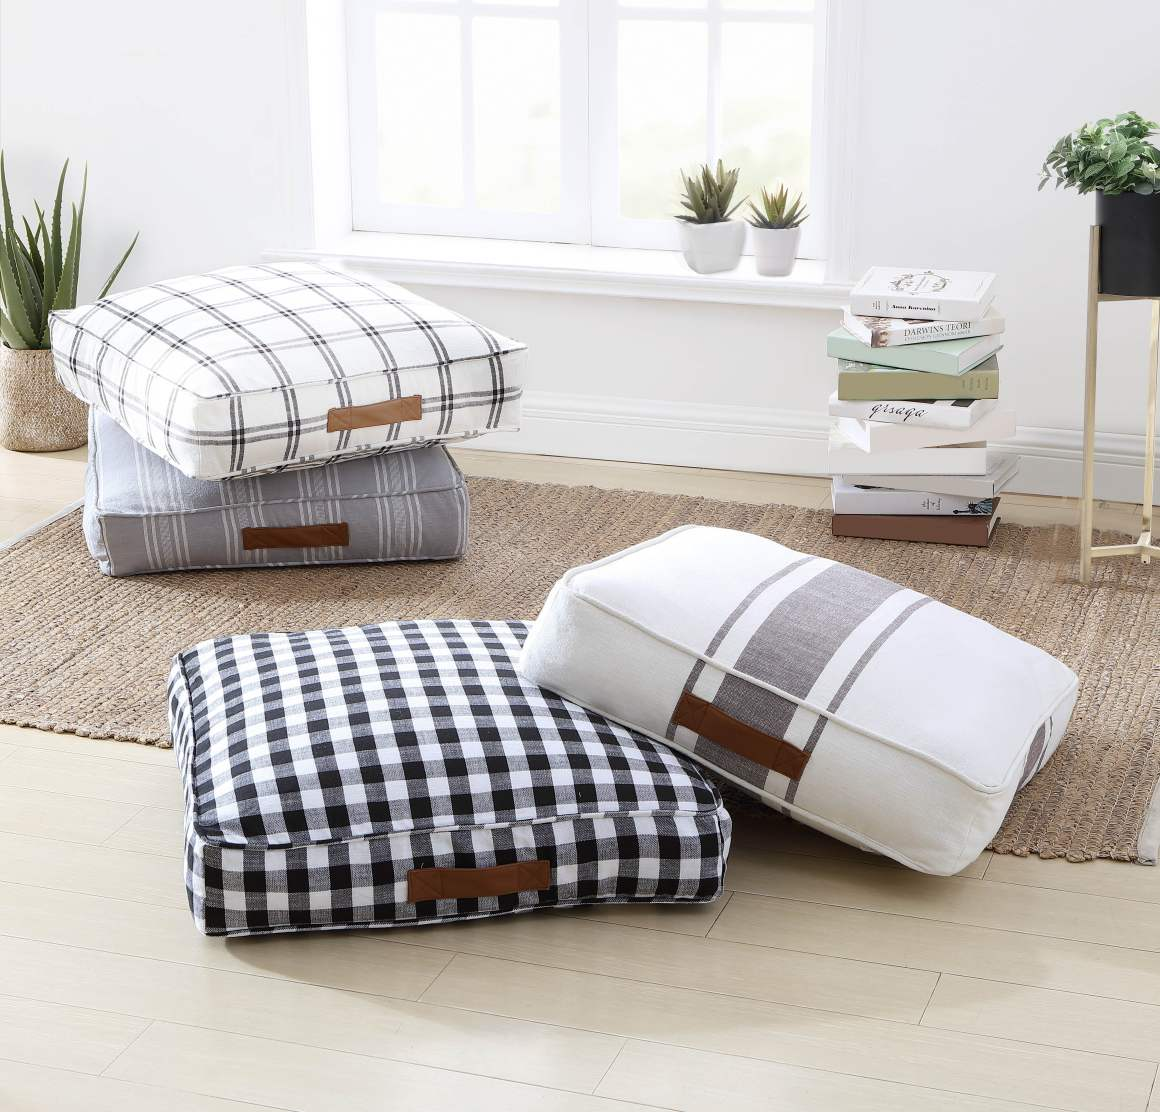 """Better Homes & Gardens Yarn Dyed Floor Cushion, 24"""" x 24"""" x 5"""", Black and White Gingham"""